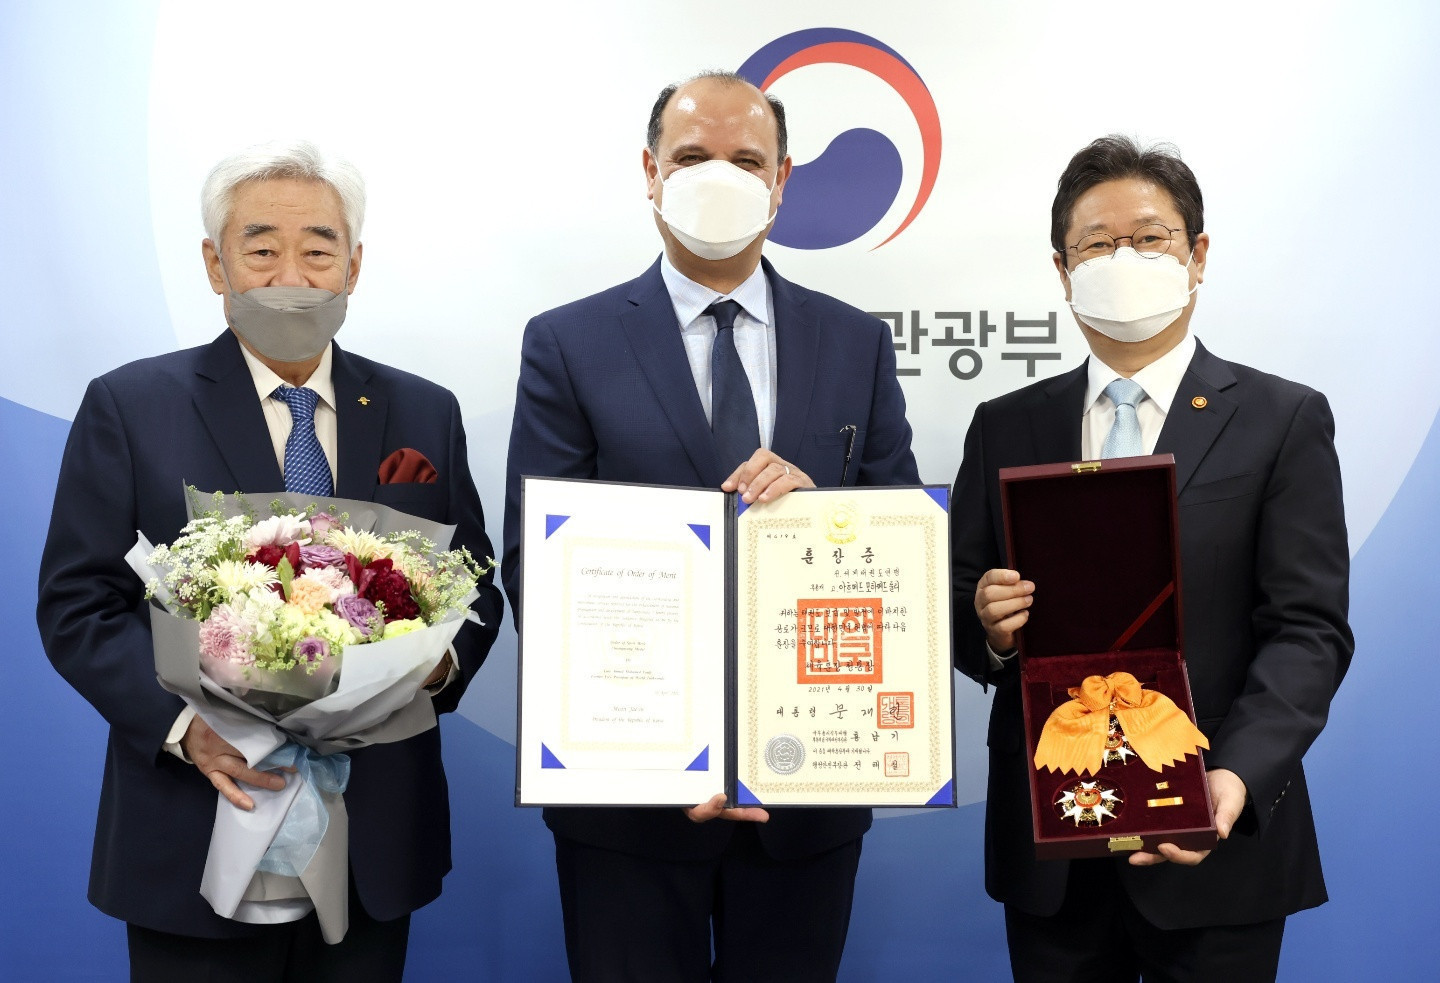 Ahmed Fouly was posthumously awarded the Cheongryong Medal in May but his family could not attend the ceremony in South Korea ©World Taekwondo